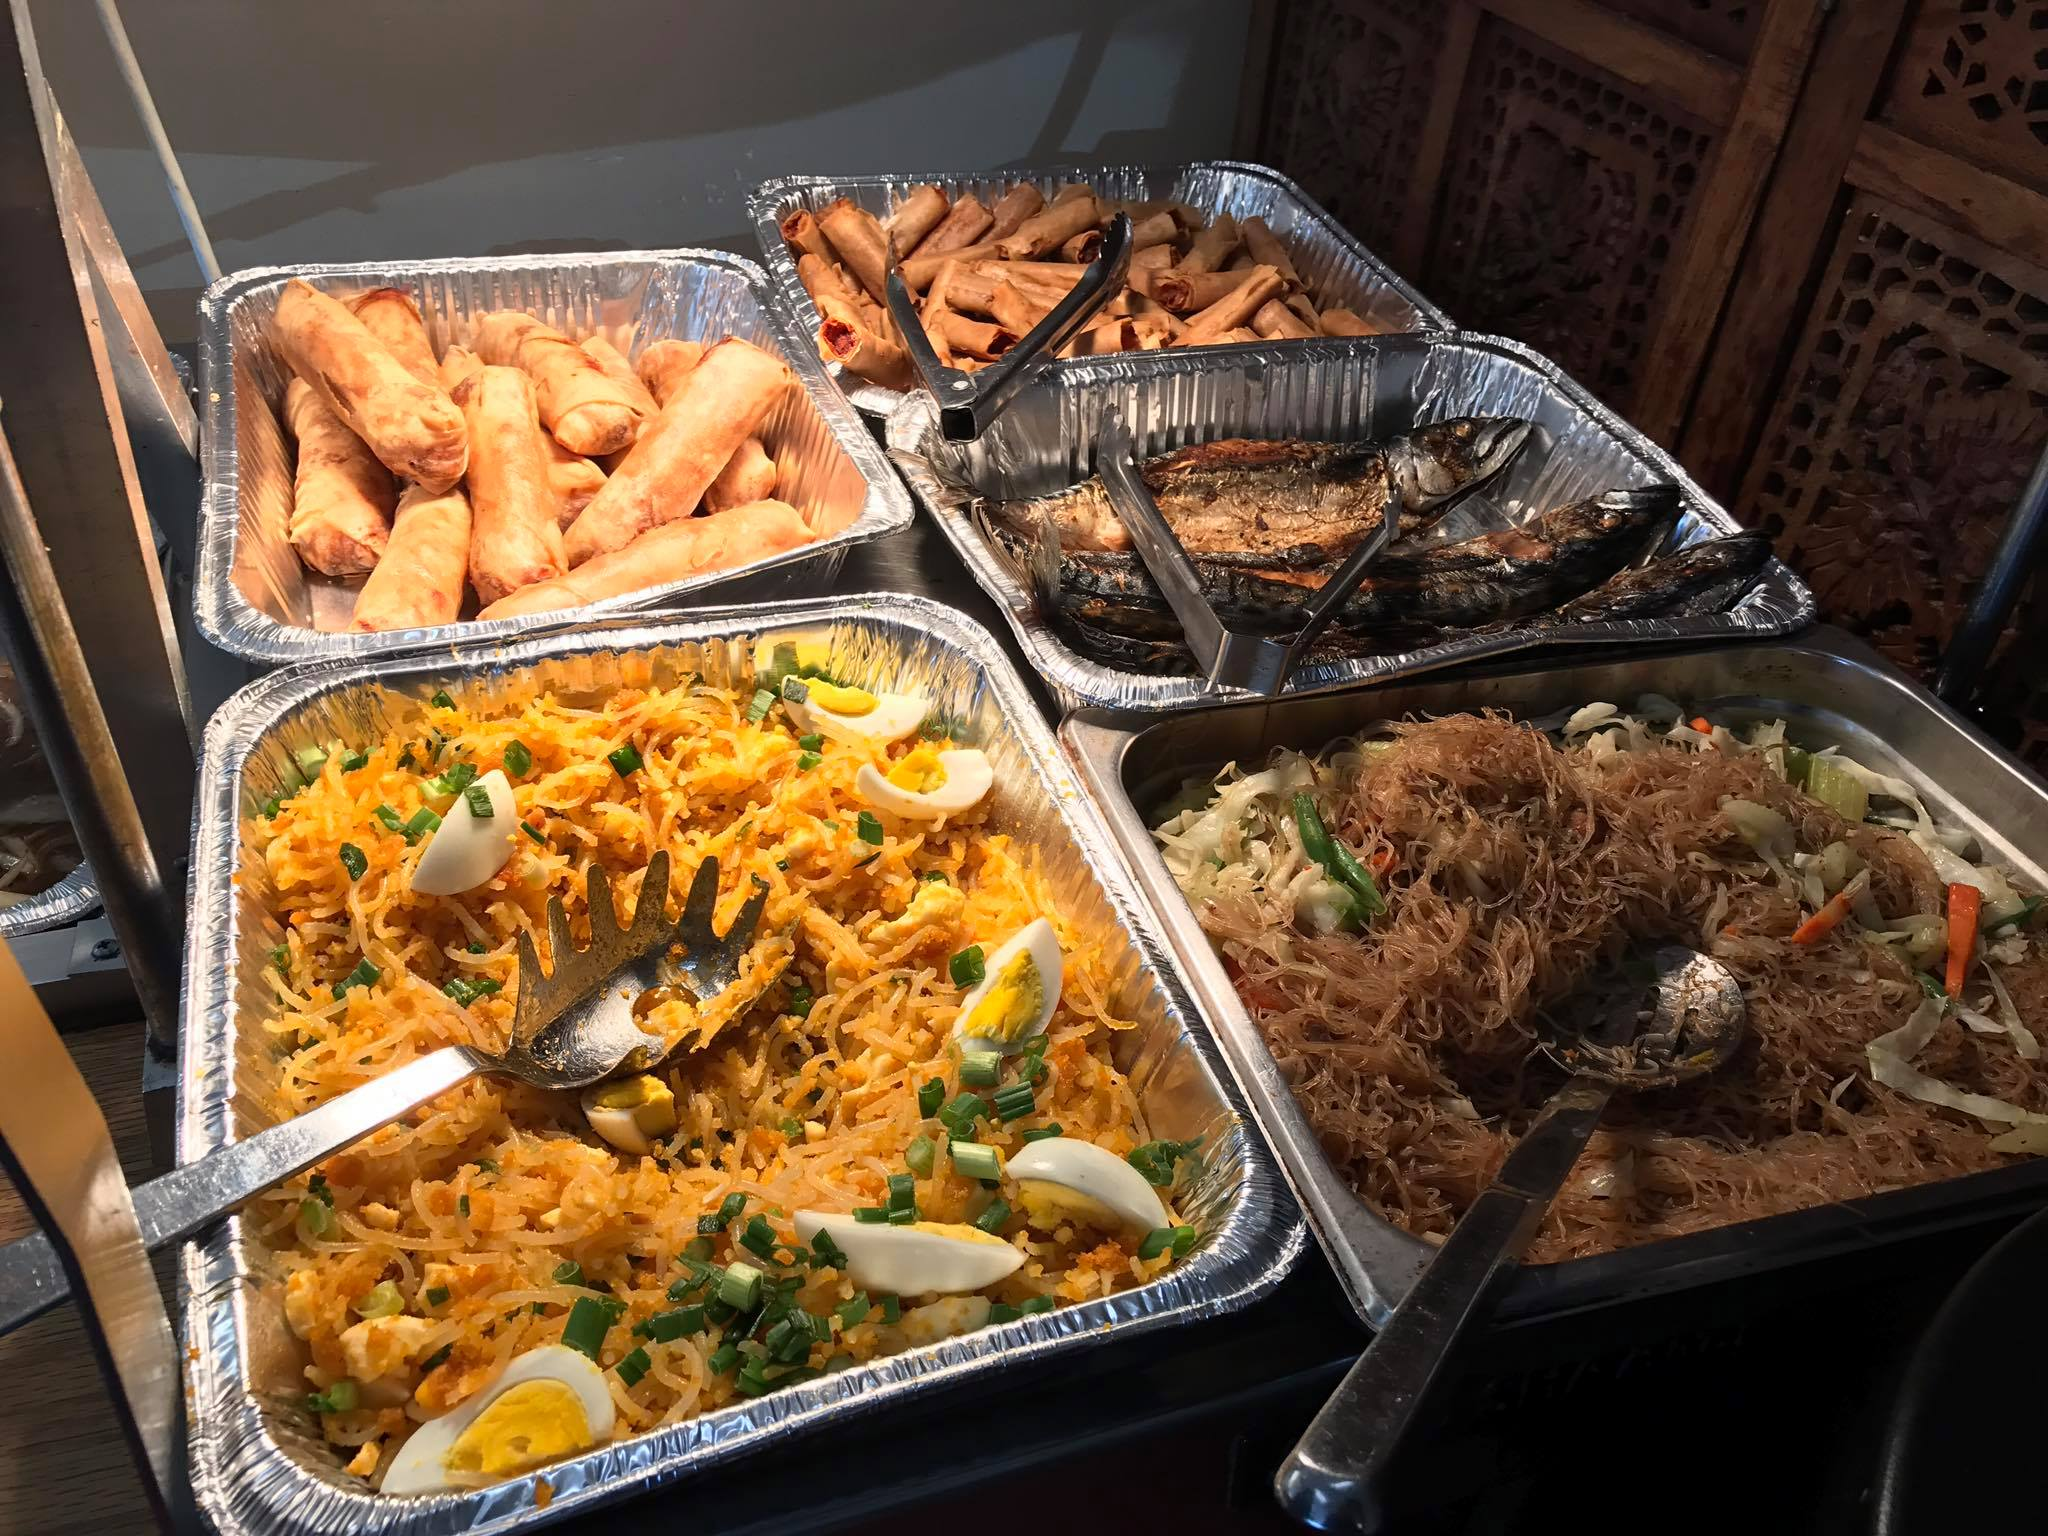 Piyesta Pinoy Food Vendors Philippine American Cultural